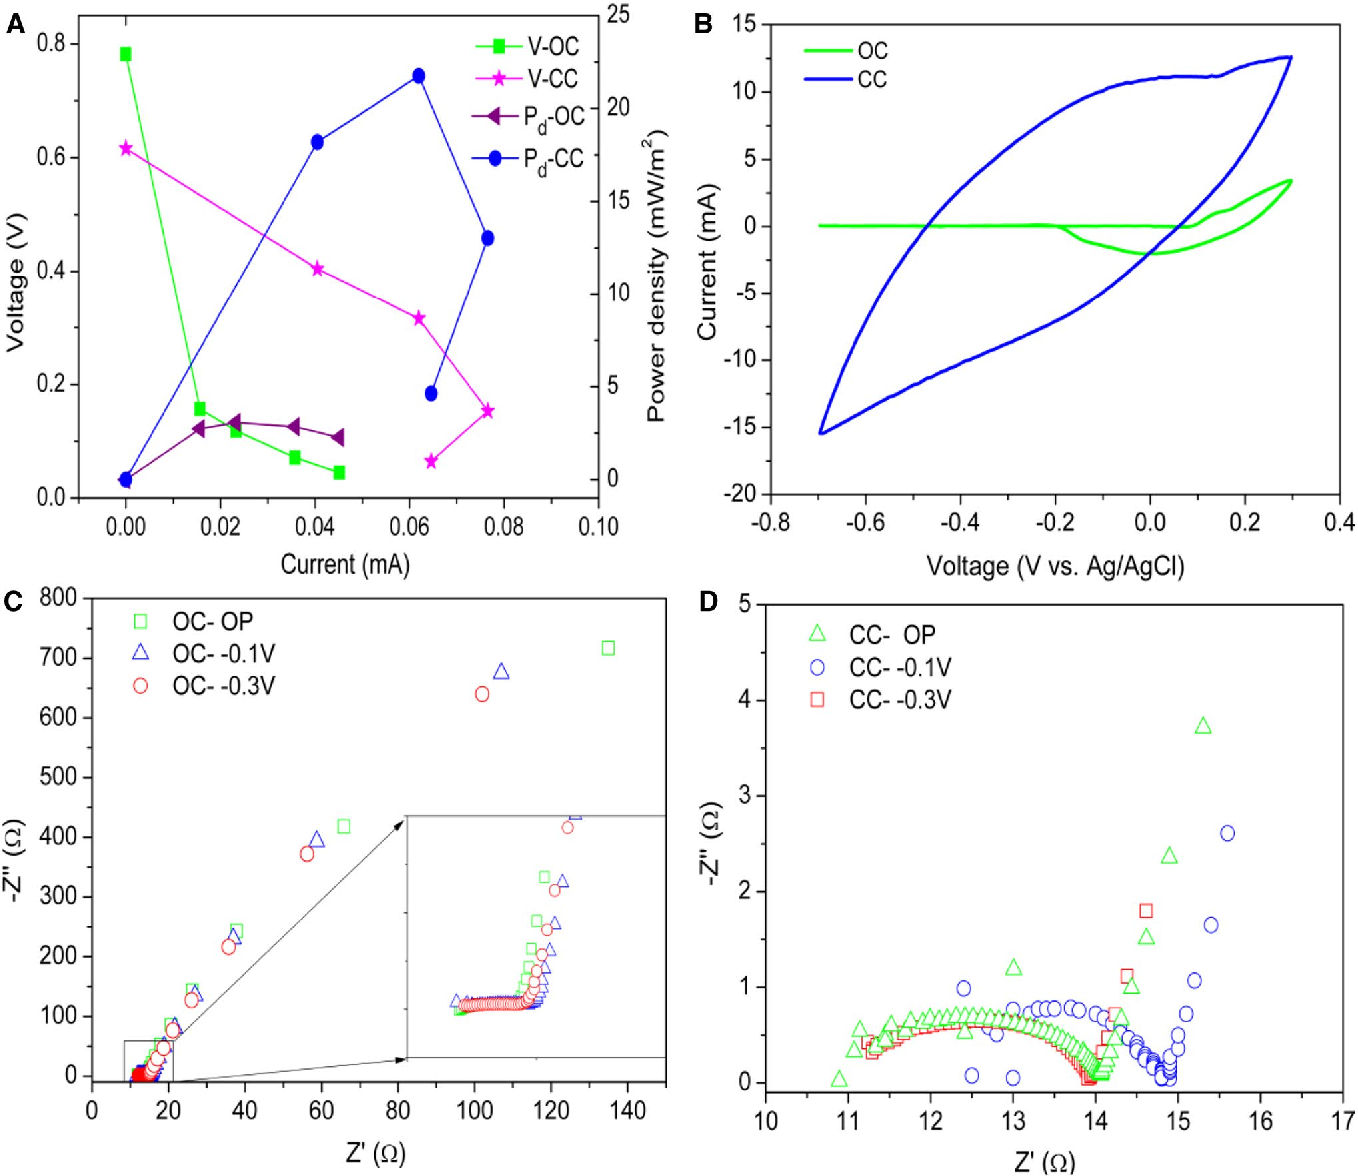 Fig. 1 Polarization behavior (a), CV response (b), and EIS analysis (c and d) of the biofilm electrode incubated under close and open circuit. OC open circuit, CC close circuit, V voltage, Pd power density, OP open potential